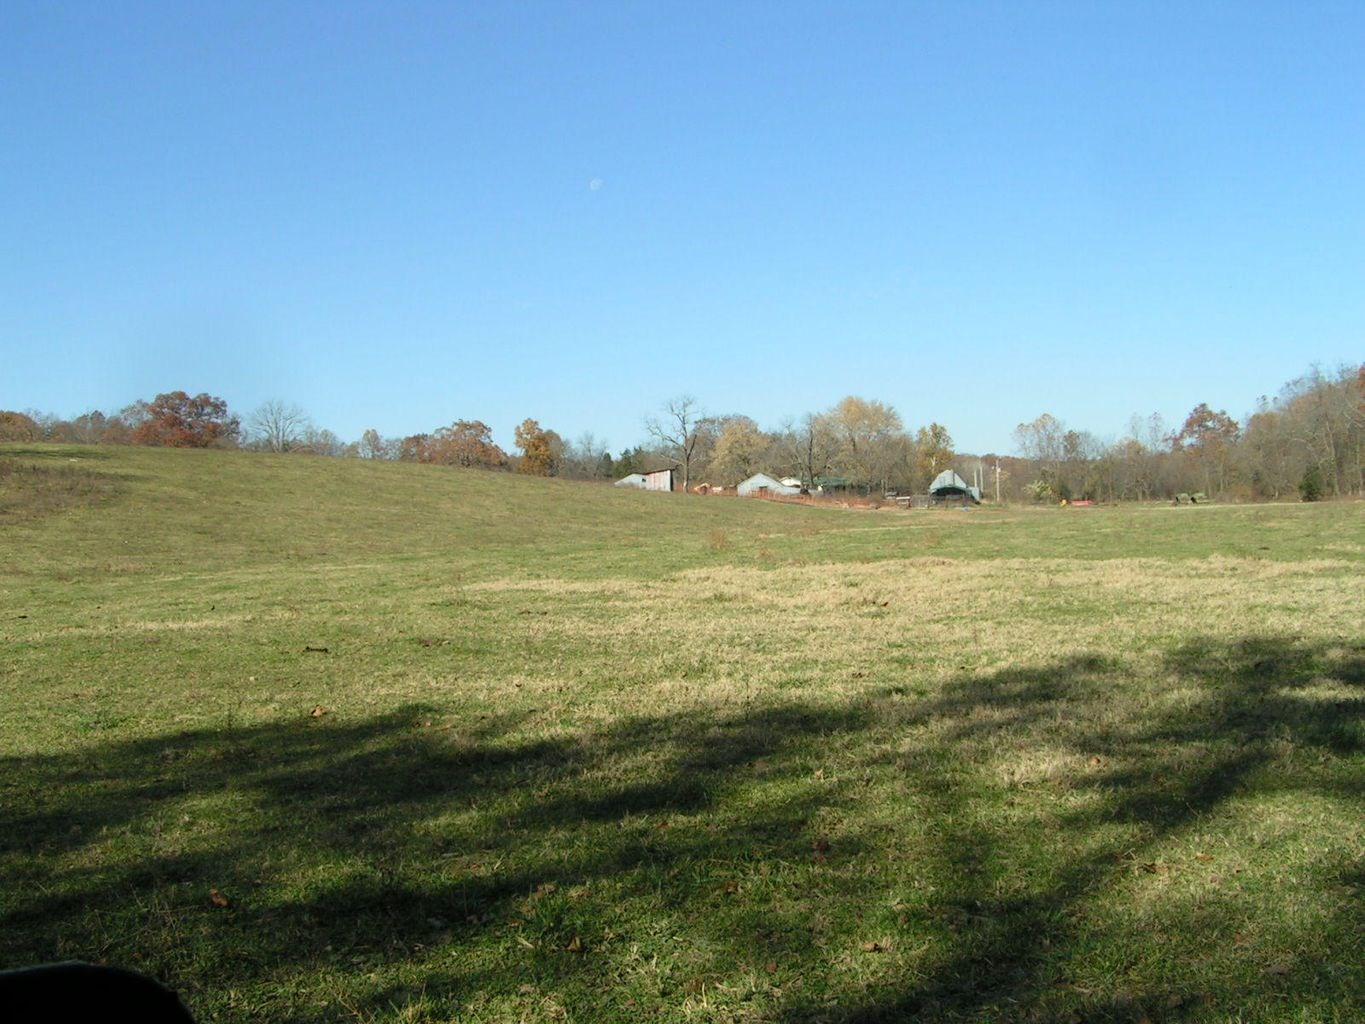 Dairy or Cattle Farm for Sale in South Central Missouri